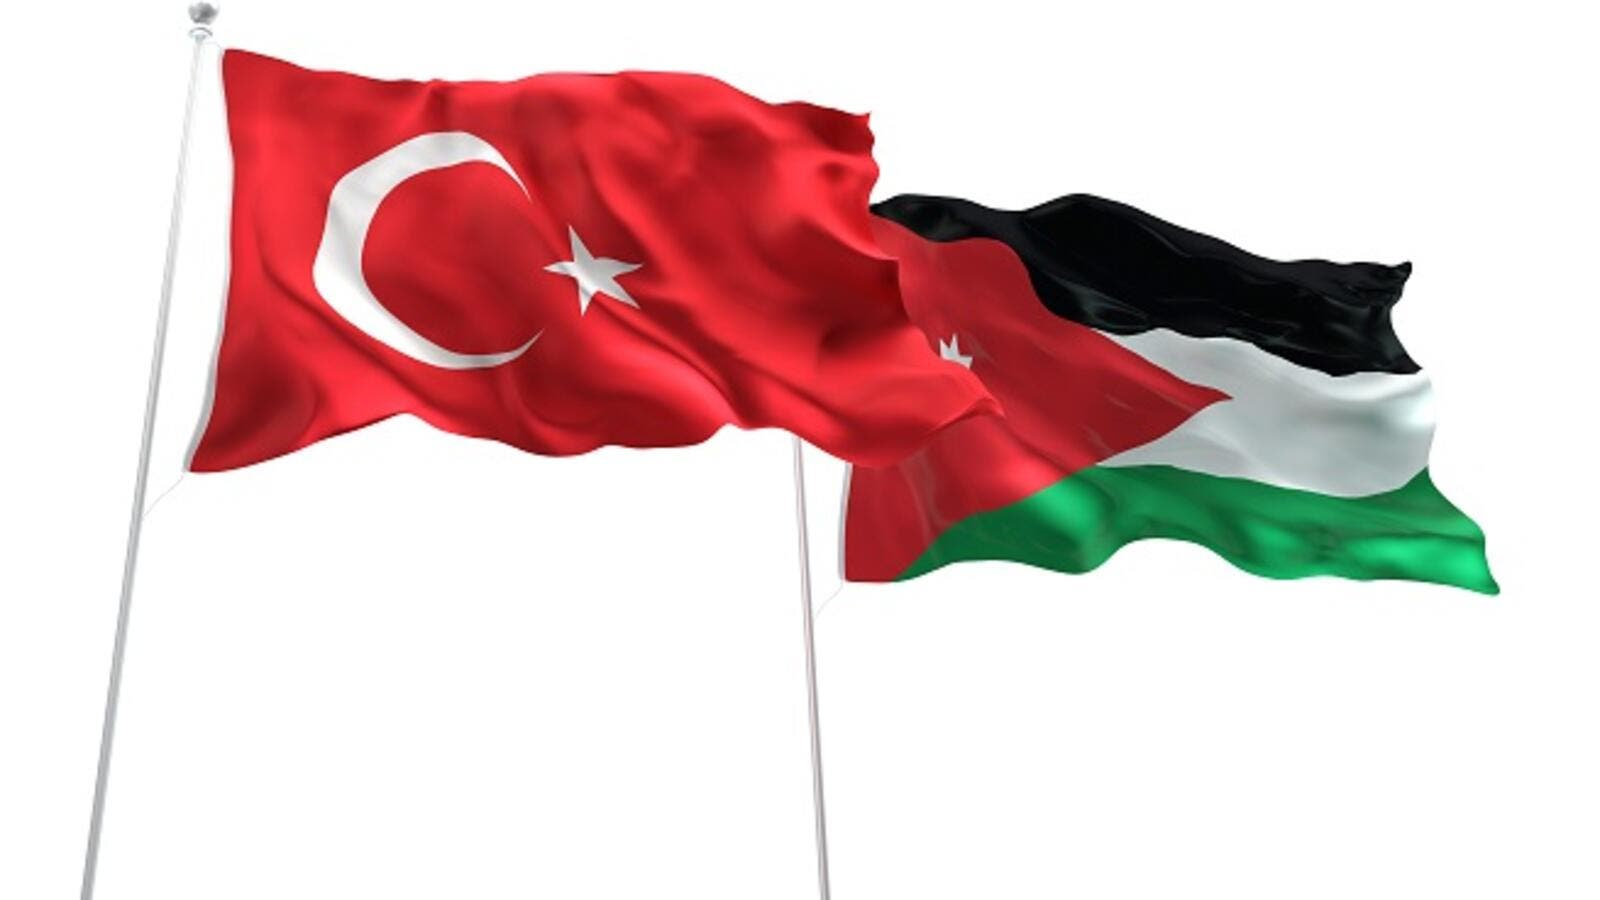 The FTA between Jordan and Turkey will be officially terminated on November 22. (Shutterstock)